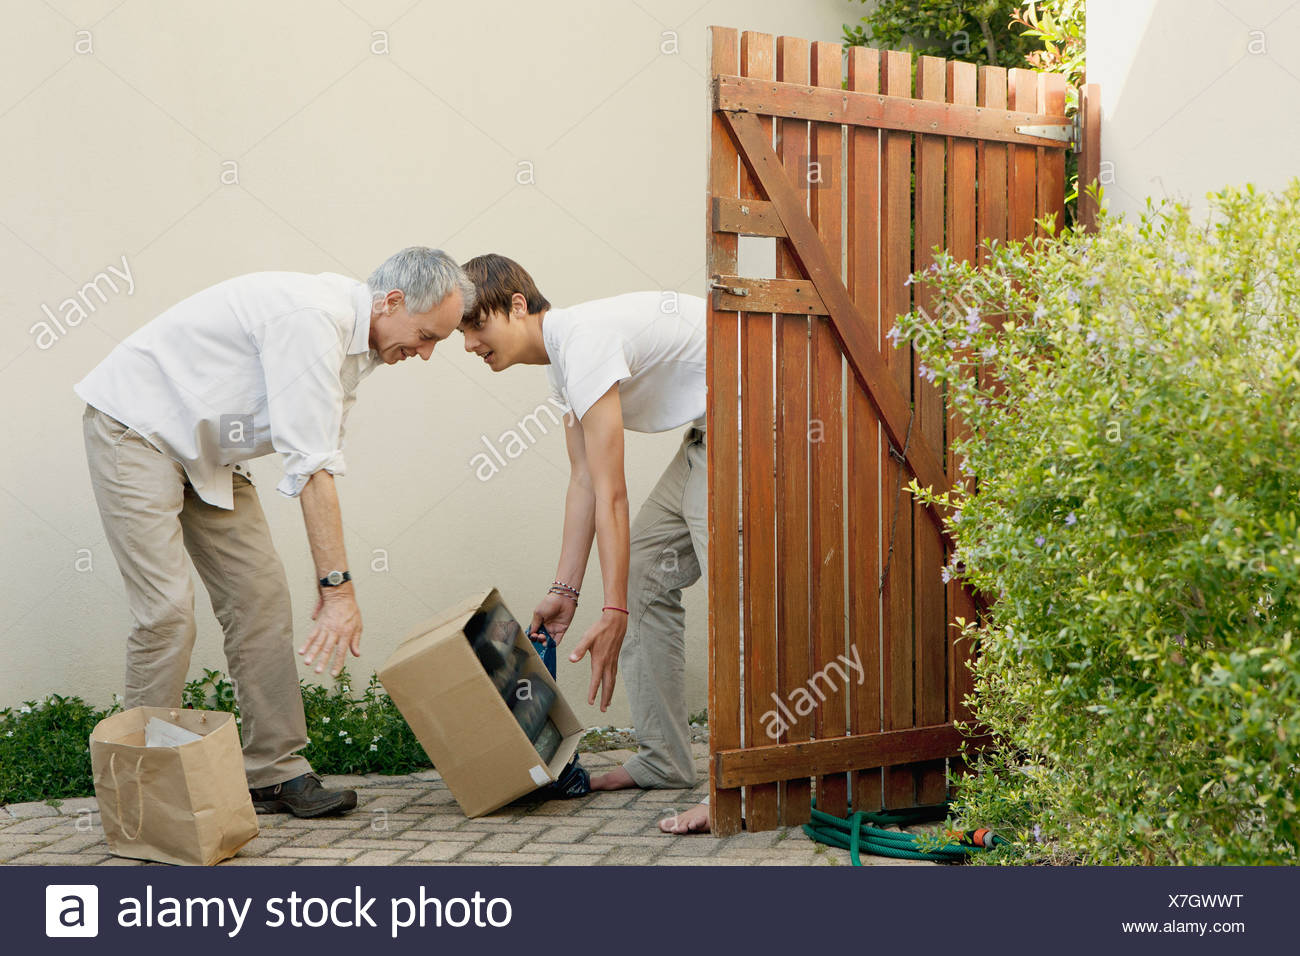 Father and son dropping box outdoors - Stock Image